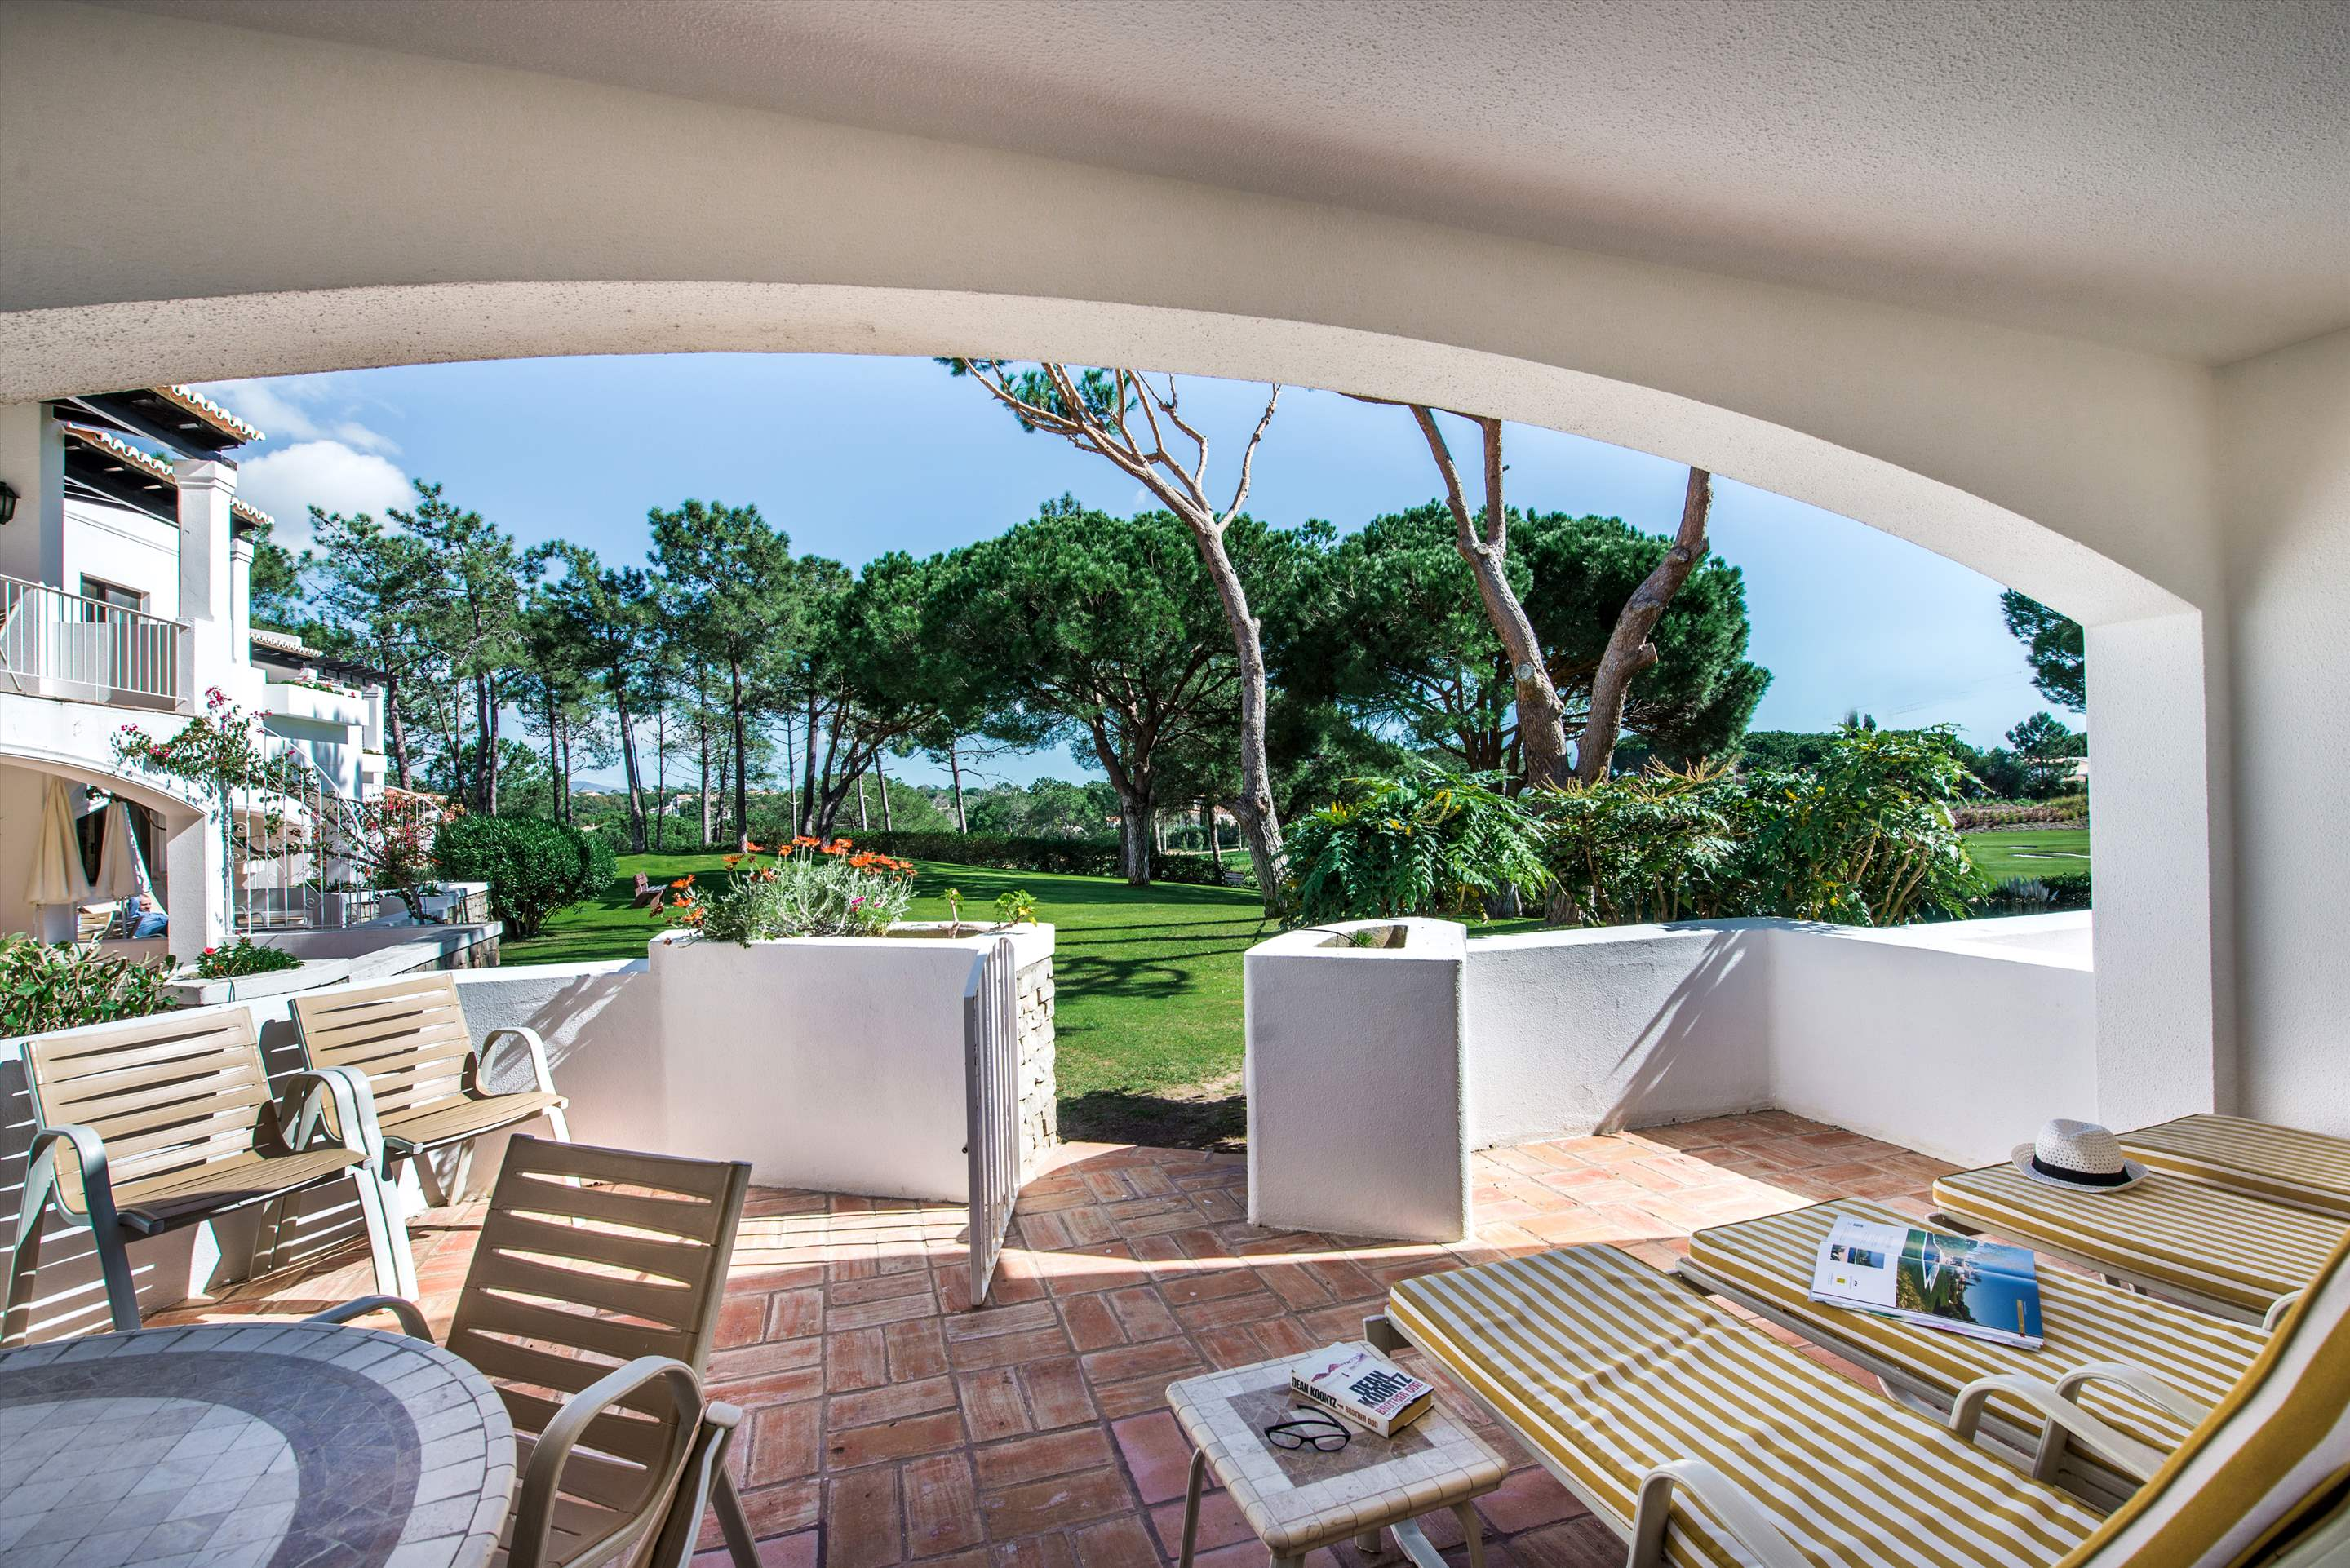 Four Seasons Country Club 1 bed, Superior - Thursday Arrival, 1 bedroom apartment in Four Seasons Country Club, Algarve Photo #10